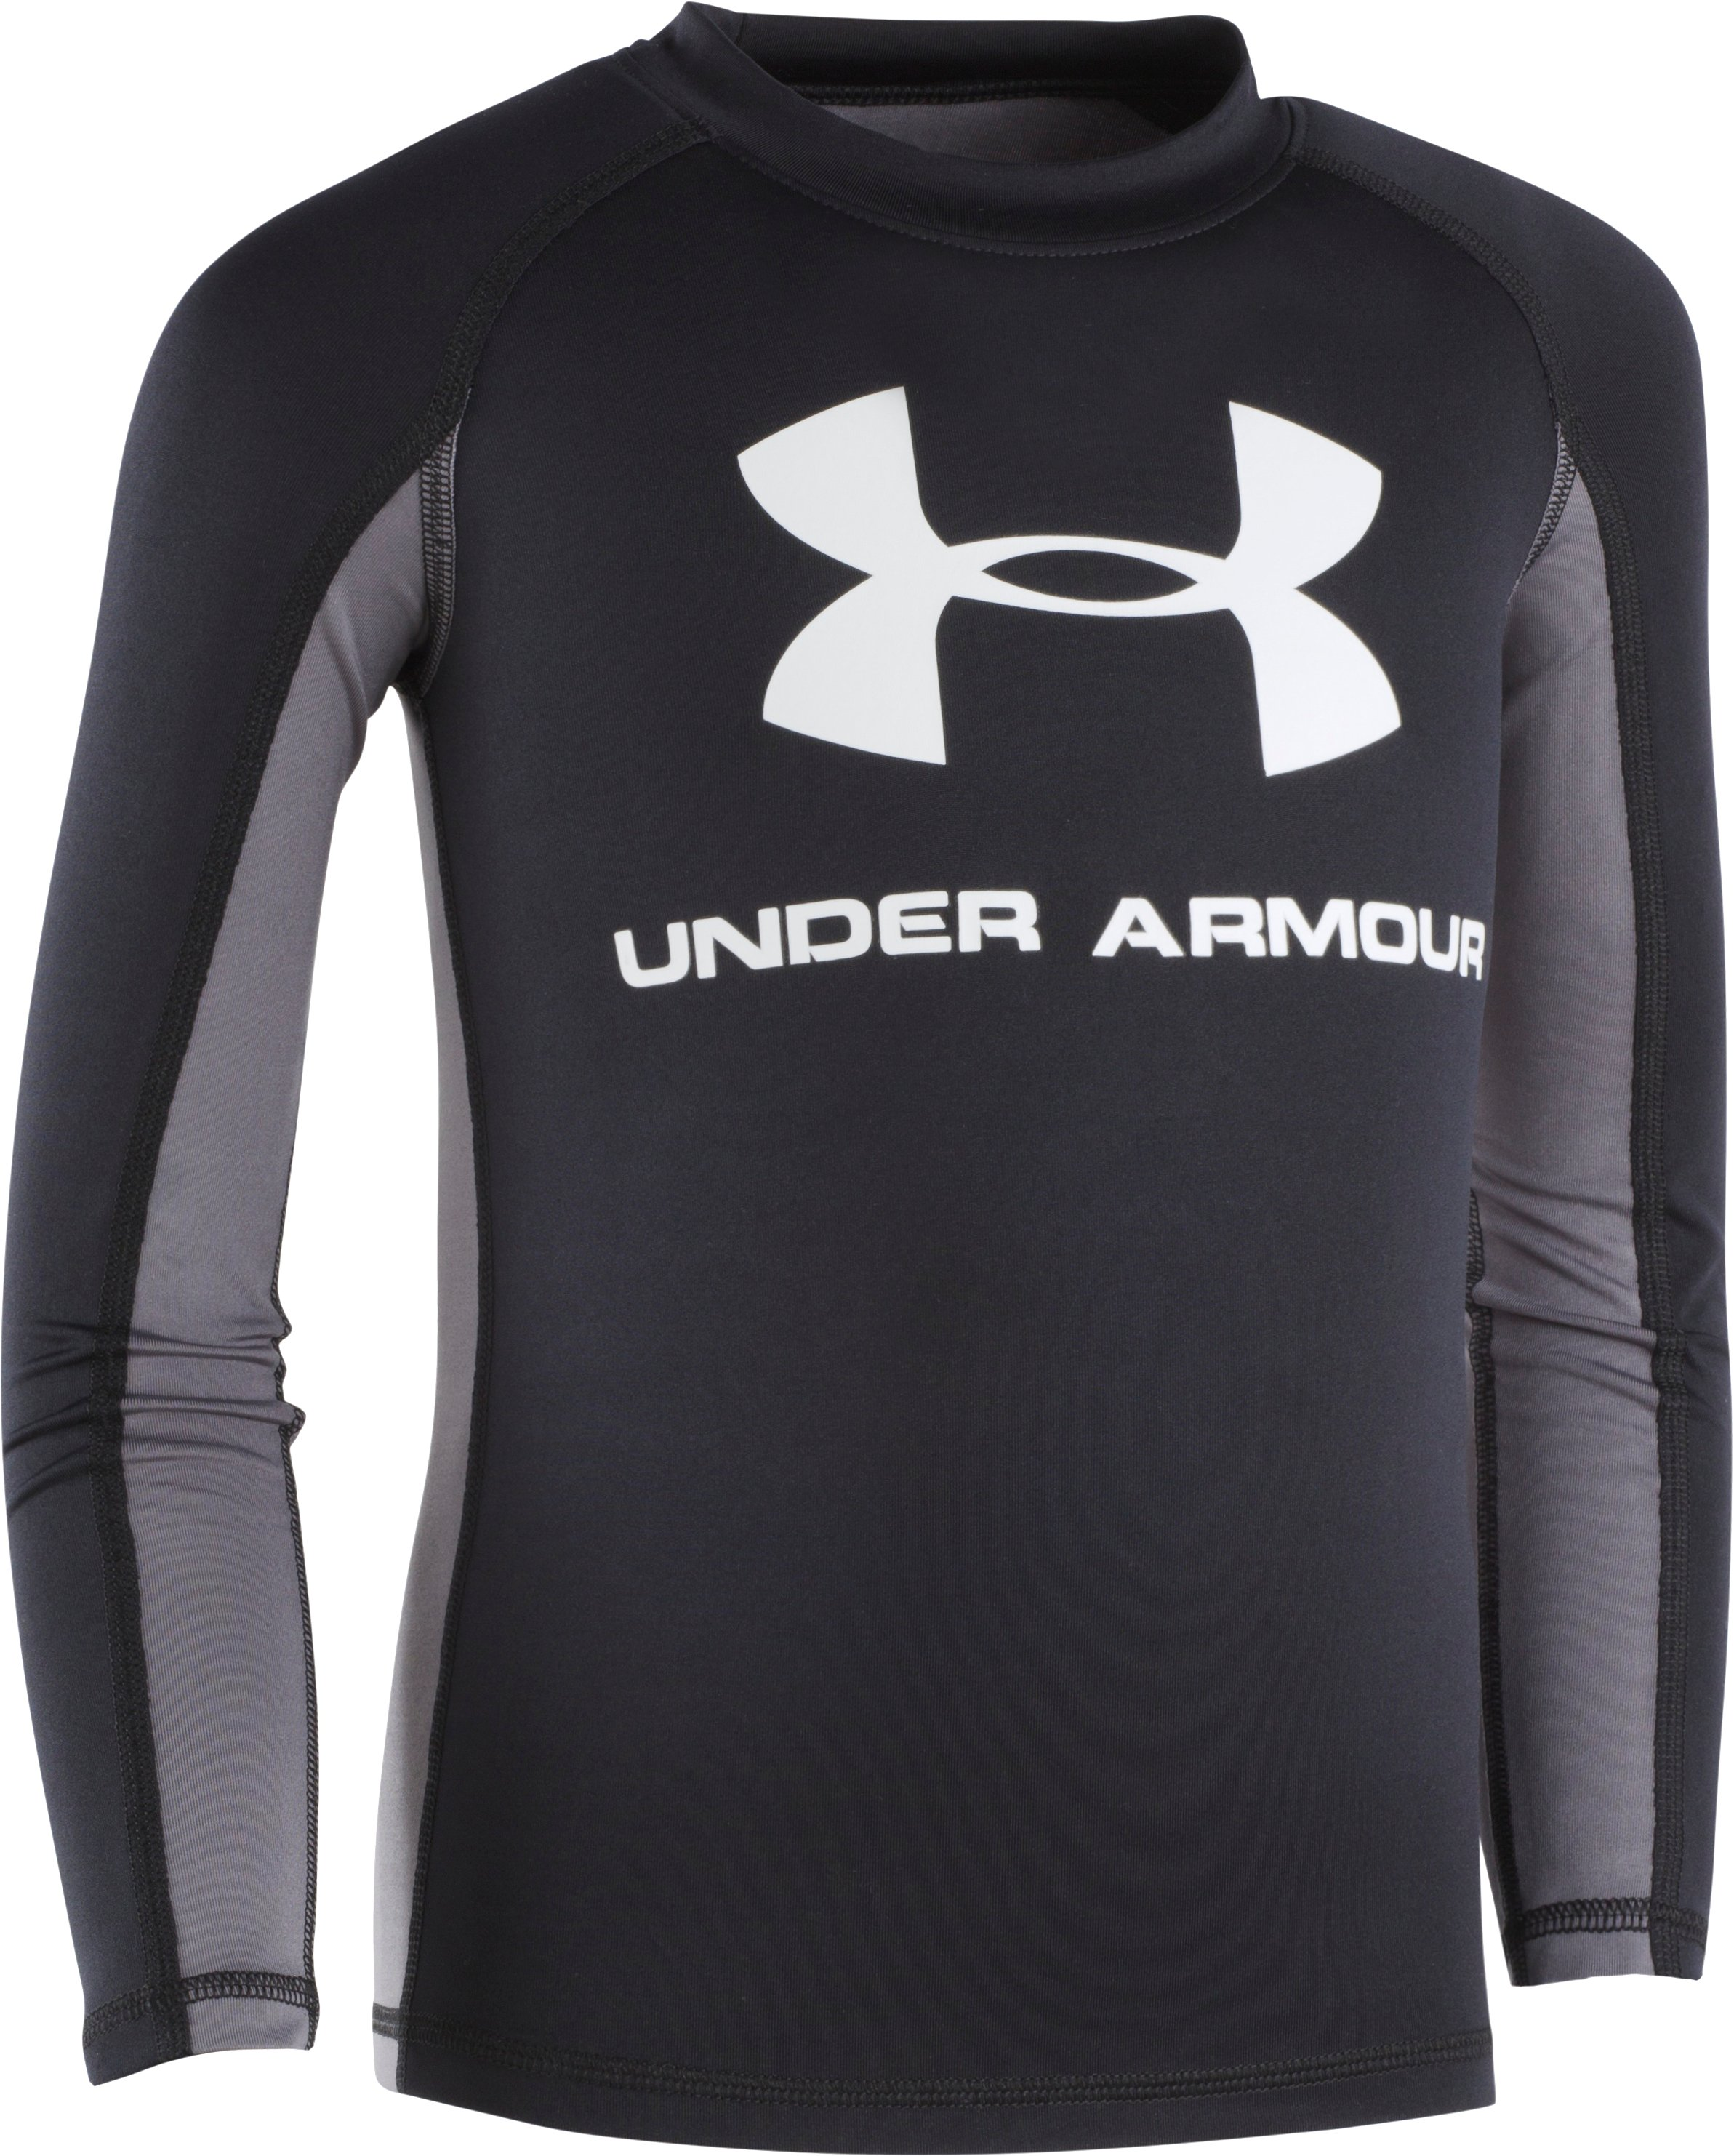 Boys' UA Compression Long Sleeve Rashguard Shirt, Black , Laydown